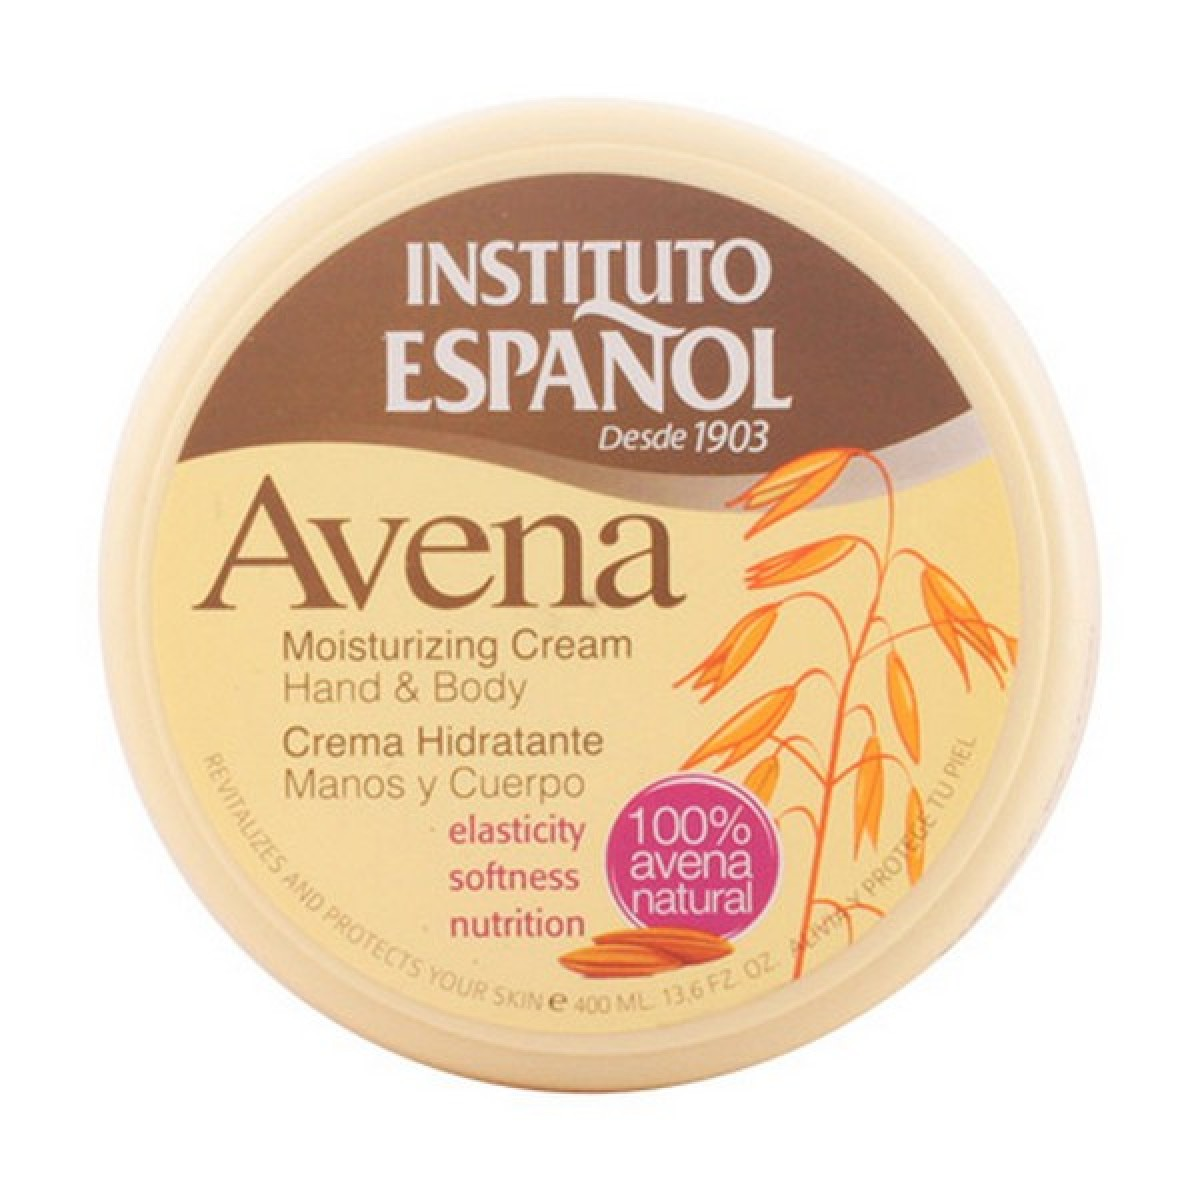 Fugtgivende bodylotion Avena Instituto Español (400 ml)